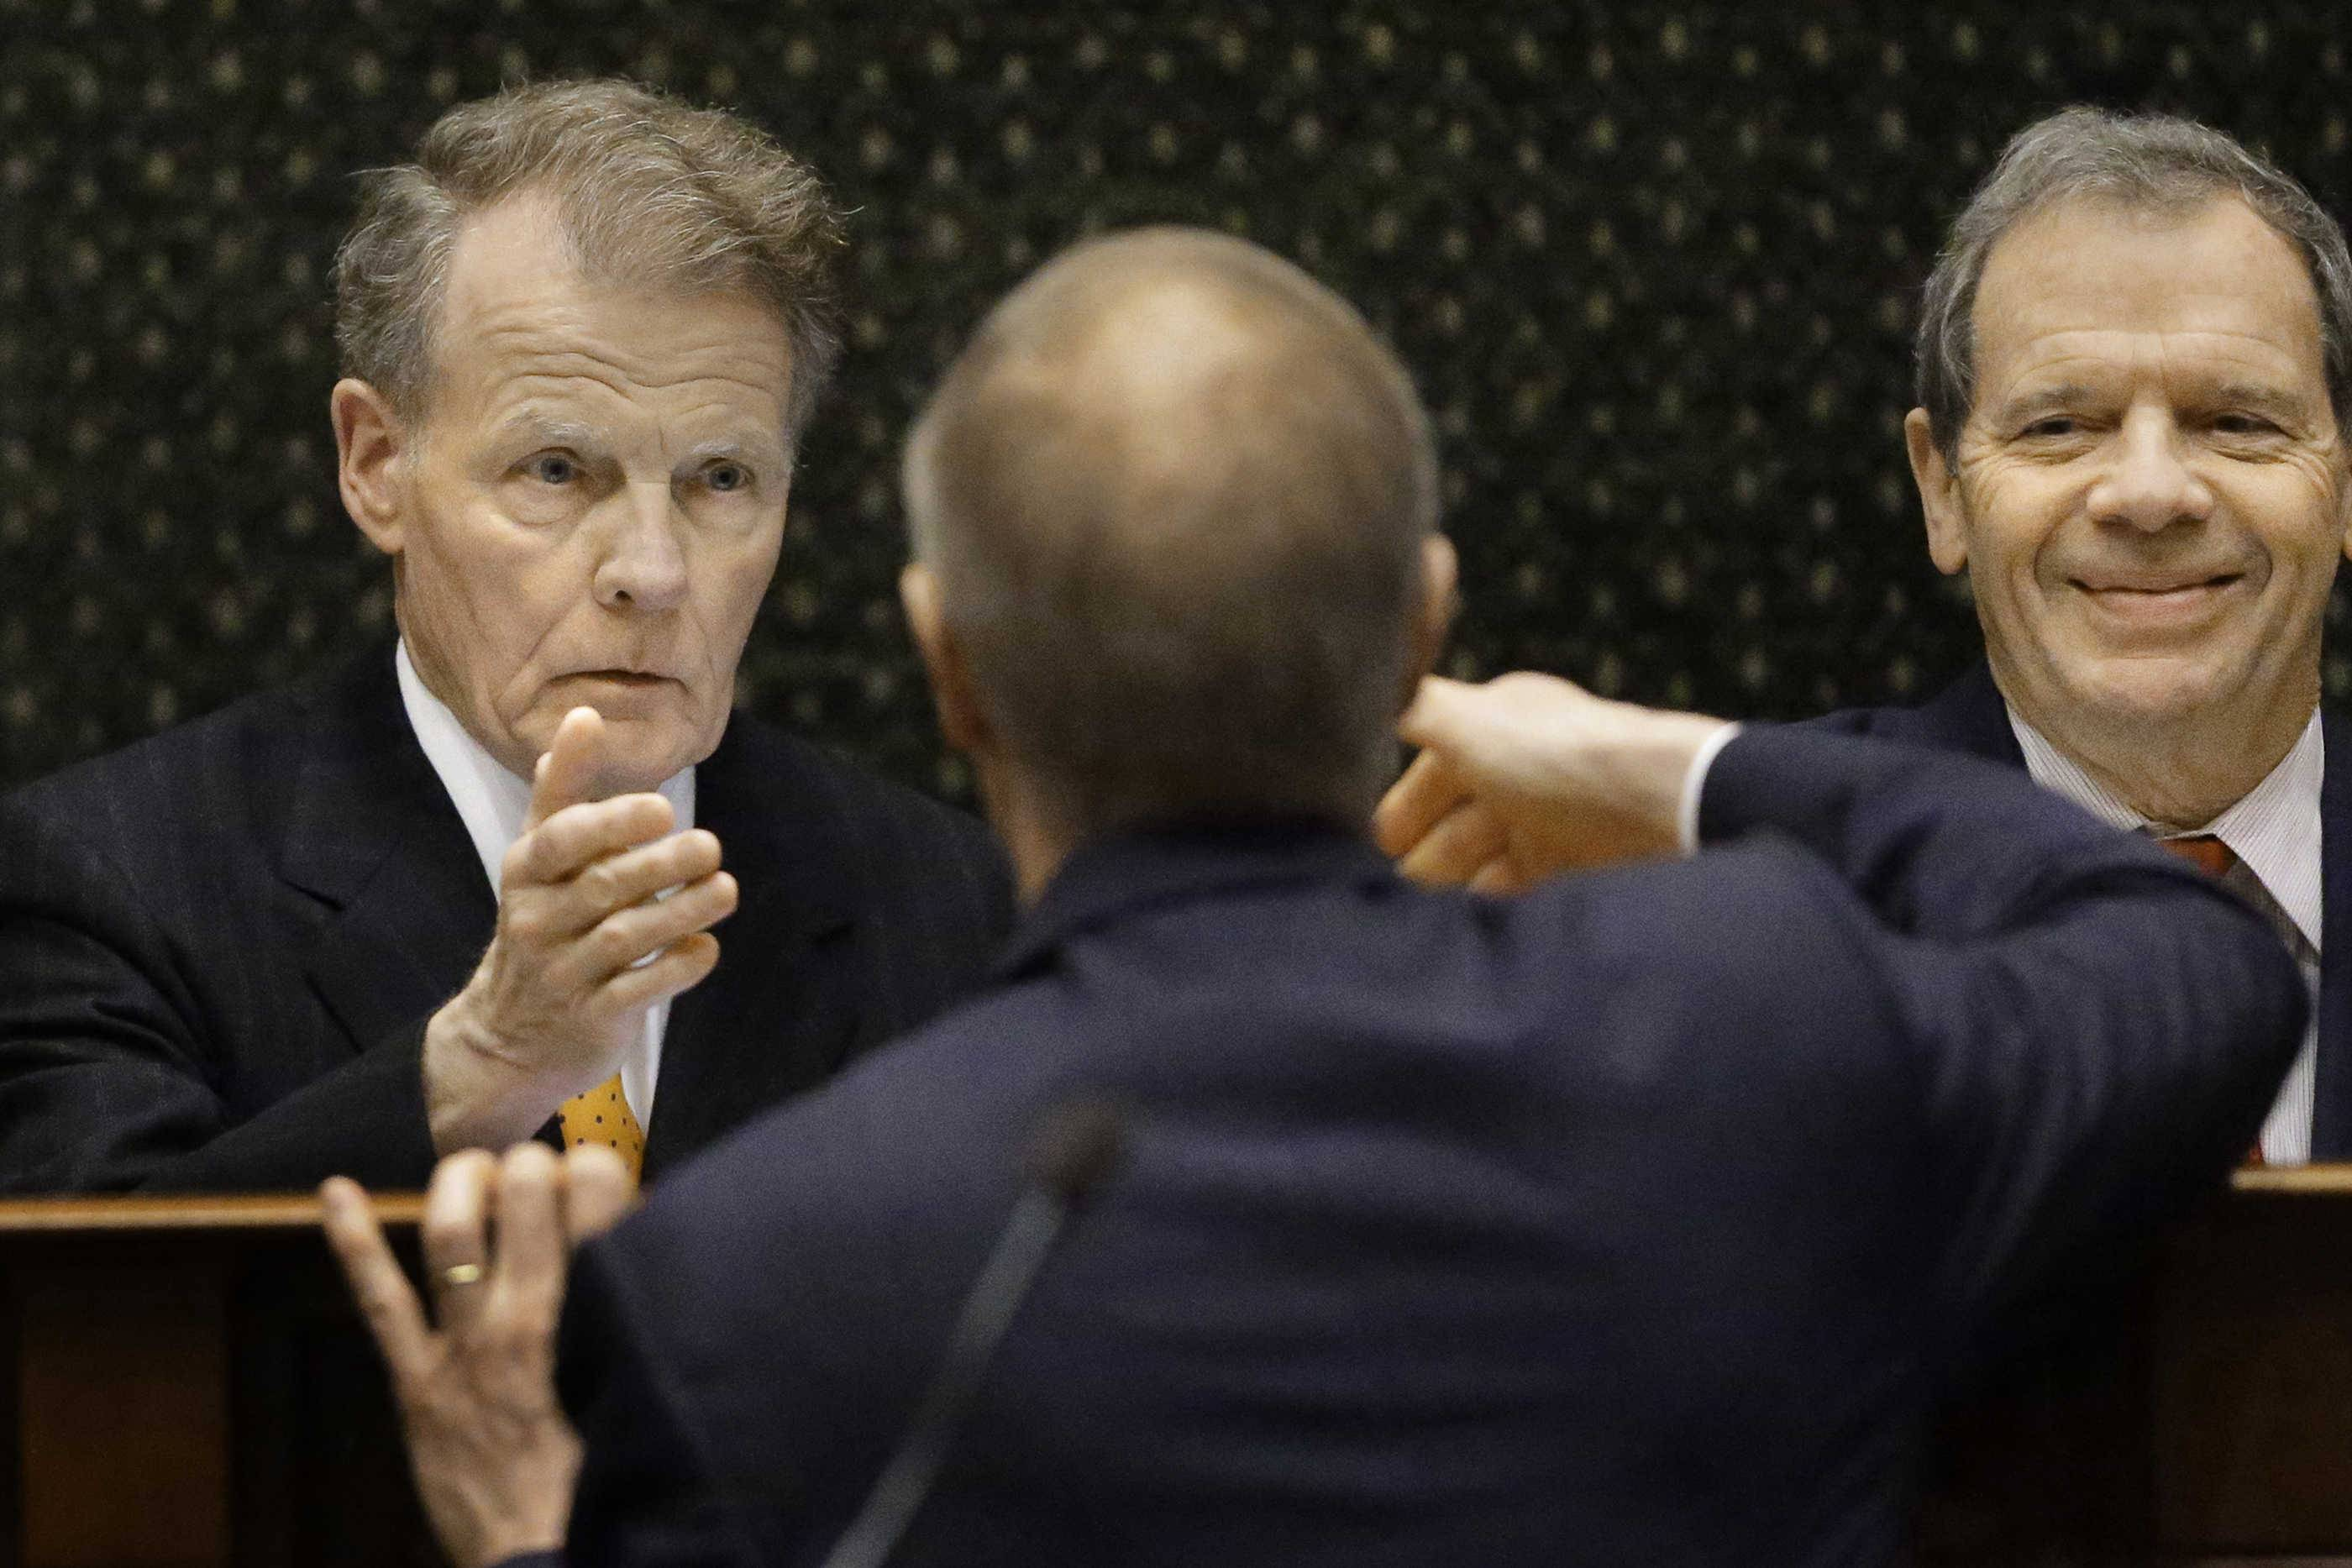 Rauner, leaders should keep budget talk private, business leaders say